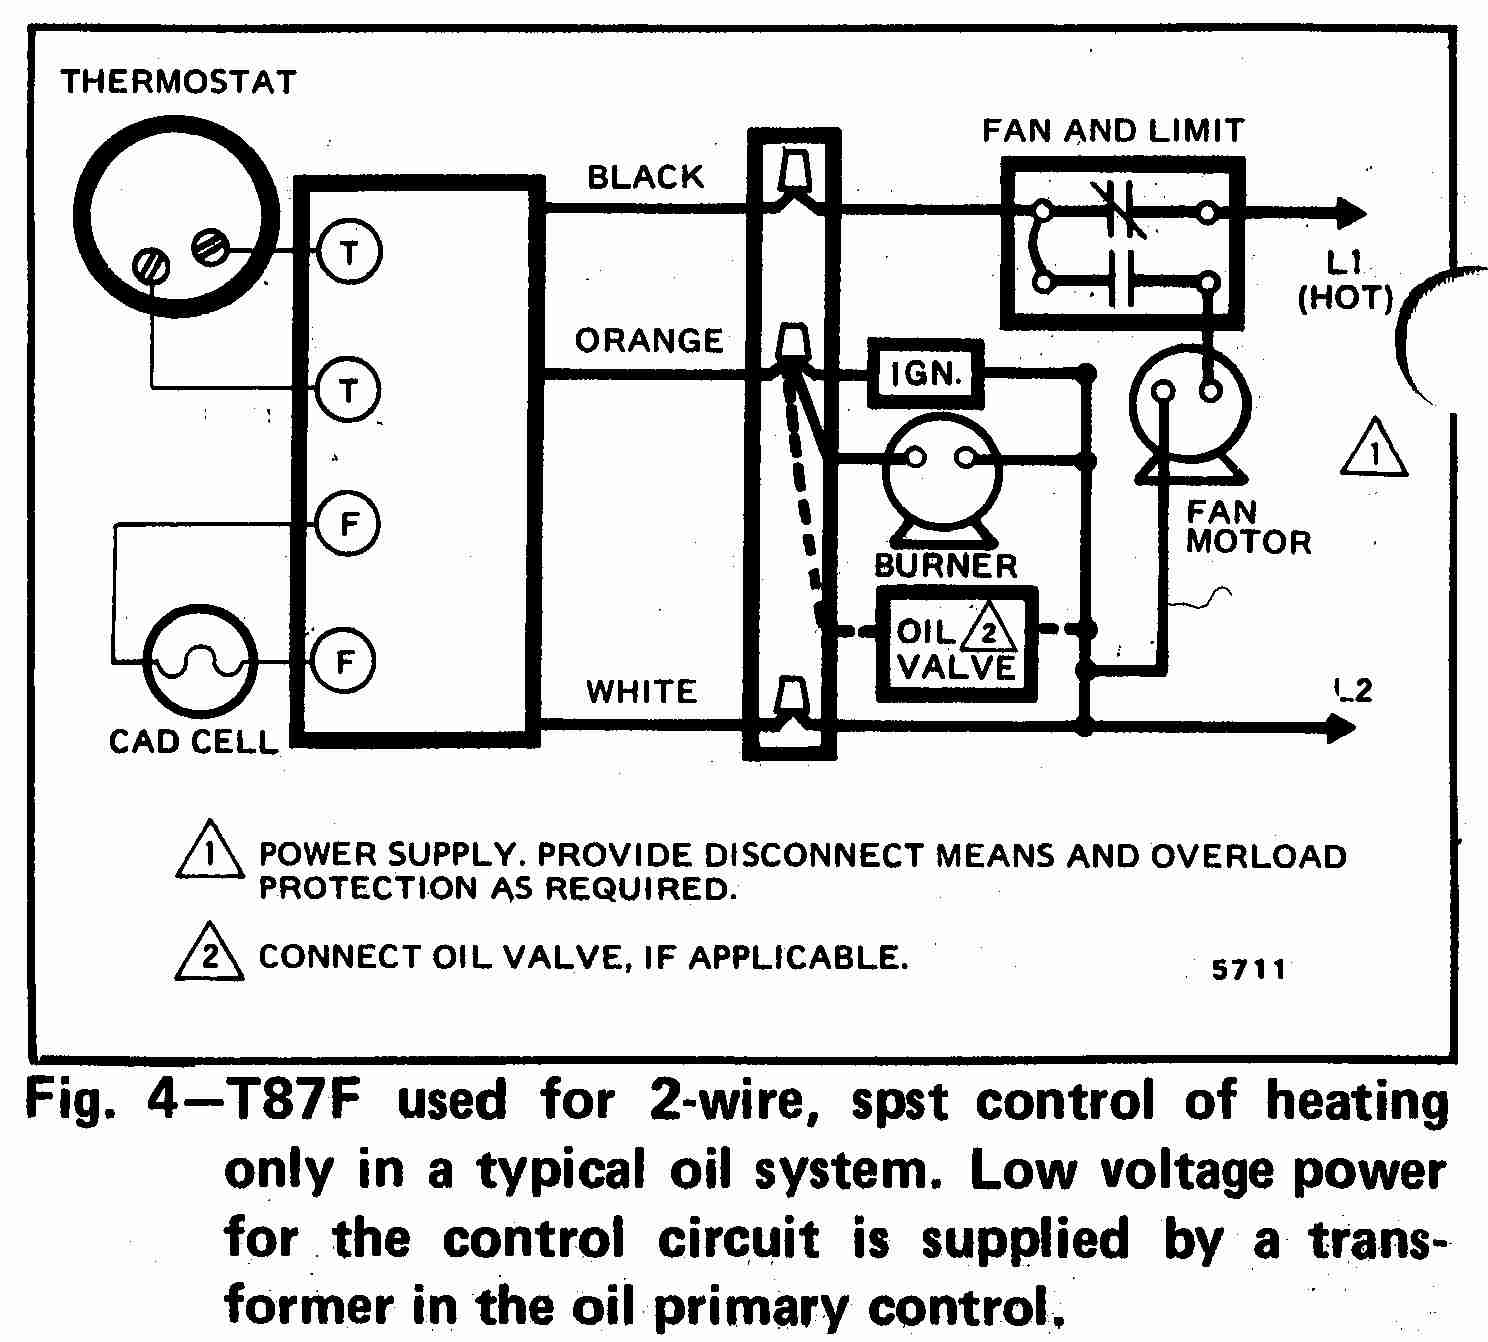 TT_T87F_0002_2W_DJF room thermostat wiring diagrams for hvac systems honeywell heating controls wiring diagrams at gsmx.co